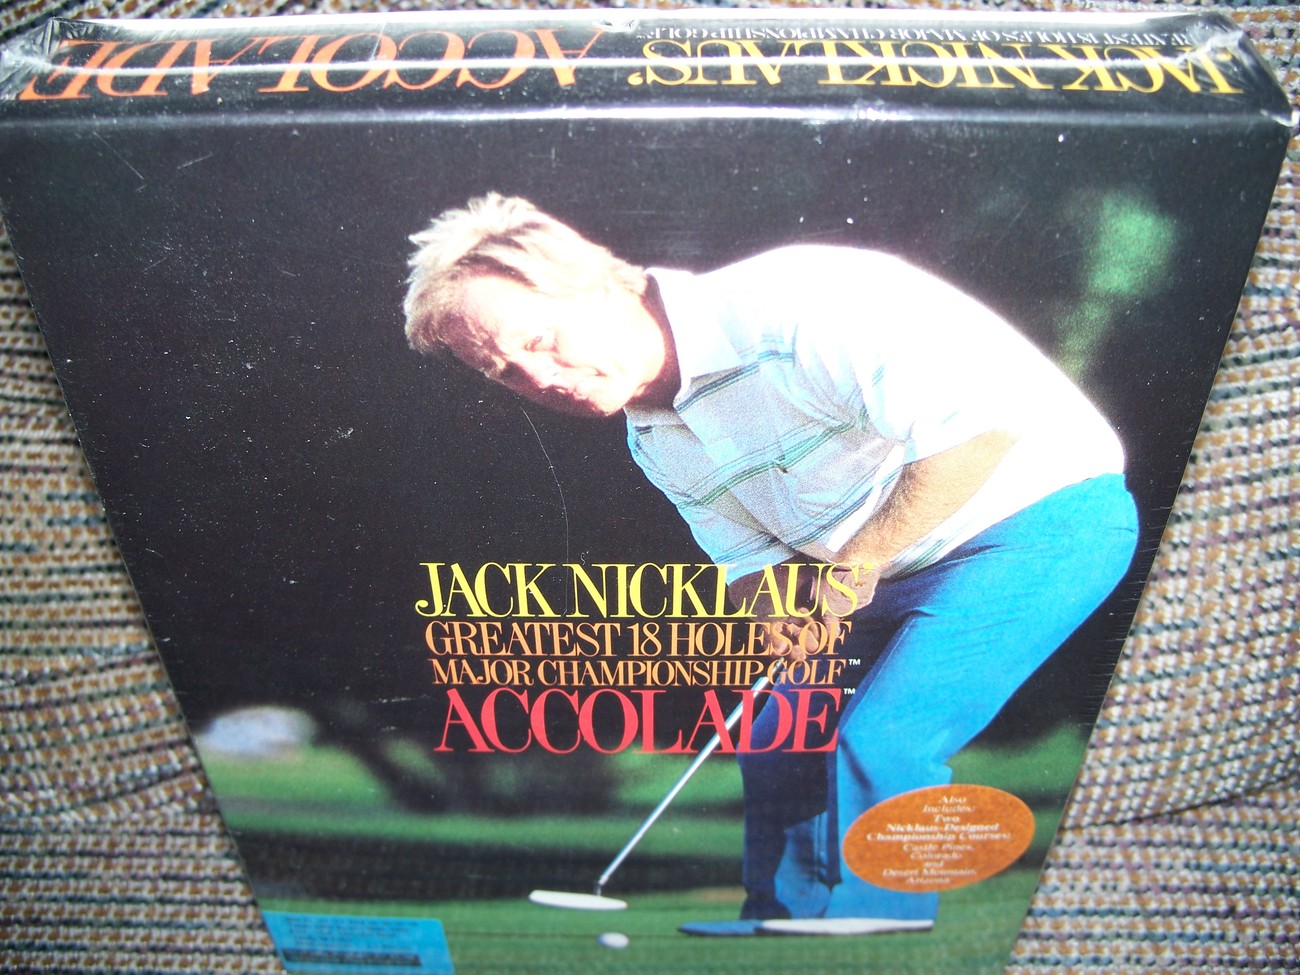 Jack Nicolaus Greatest 18 Holes of Championship Golf PC DOS